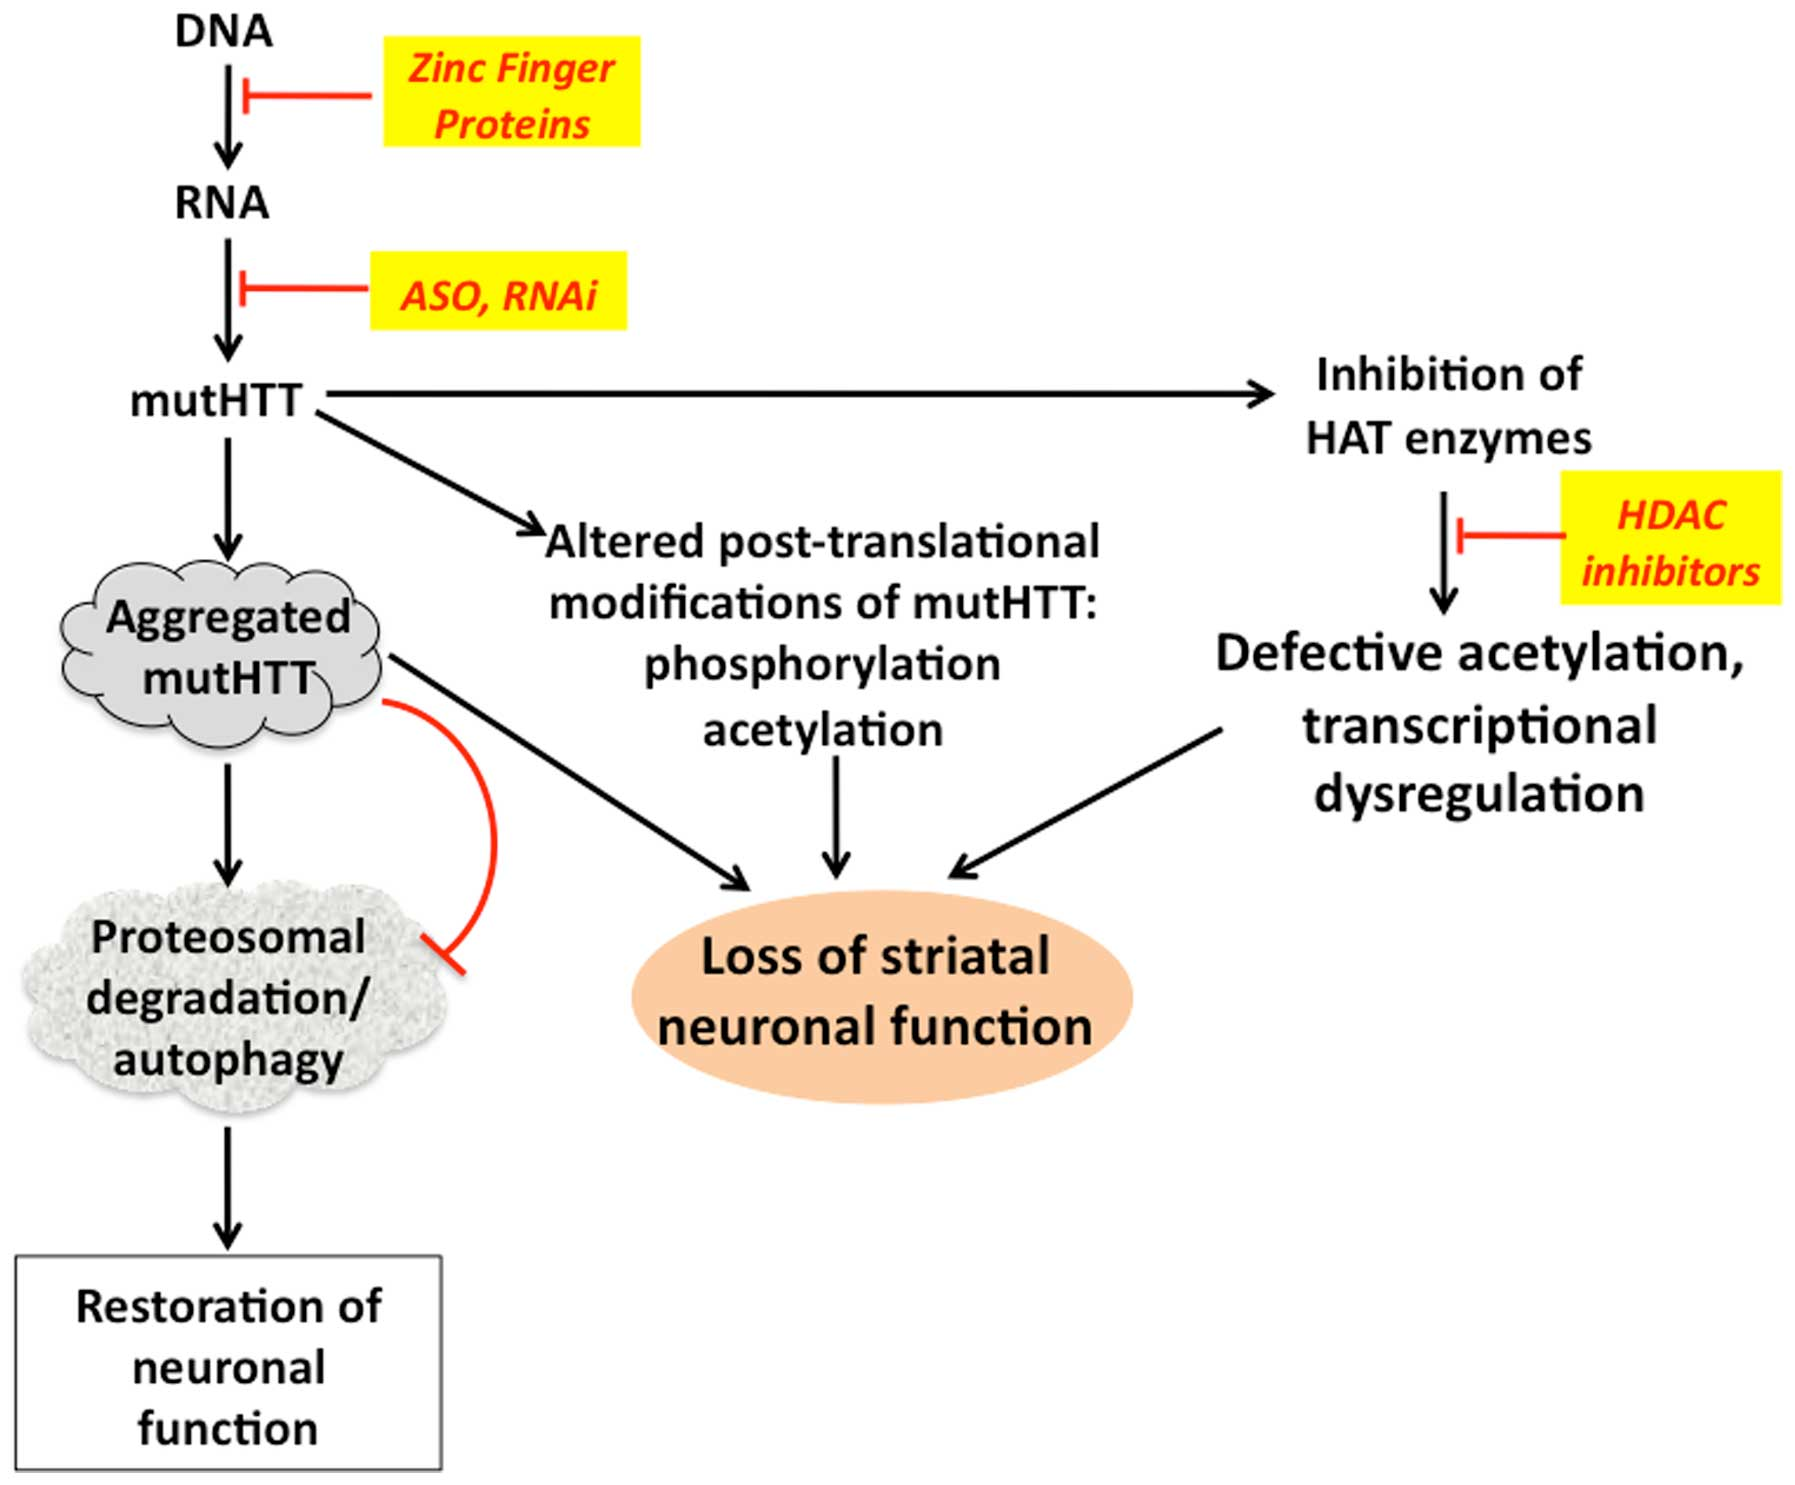 Huntington S Disease Molecular Basis Of Pathology And Status Of Current Therapeutic Approaches Review